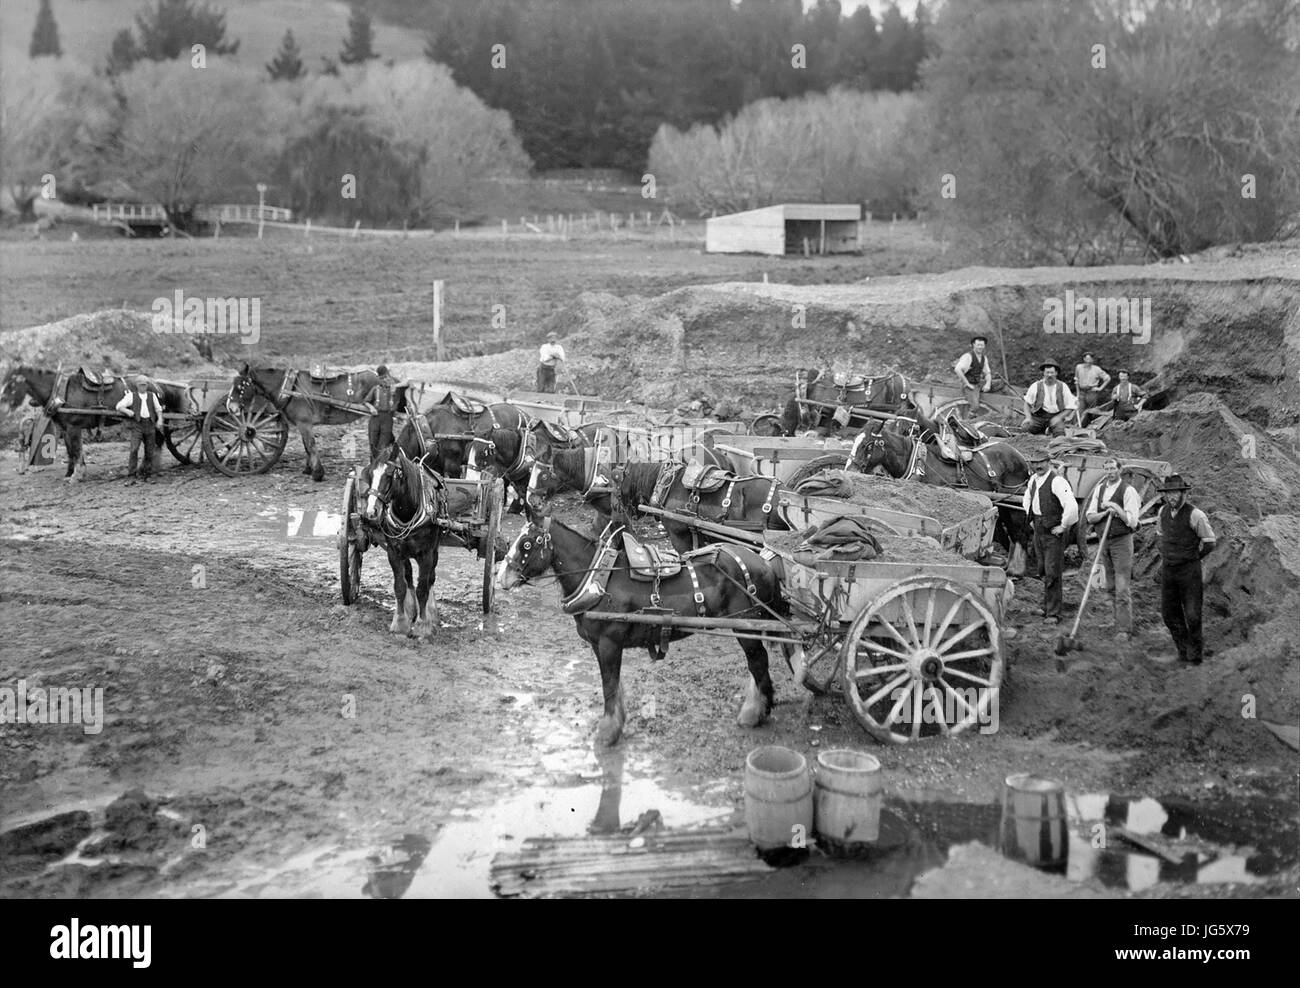 Christchurch, New Zealand - 1890's: Smart's Shingle Pit with Workers, Draft Horses and Drays in Sydenham, - Stock Image